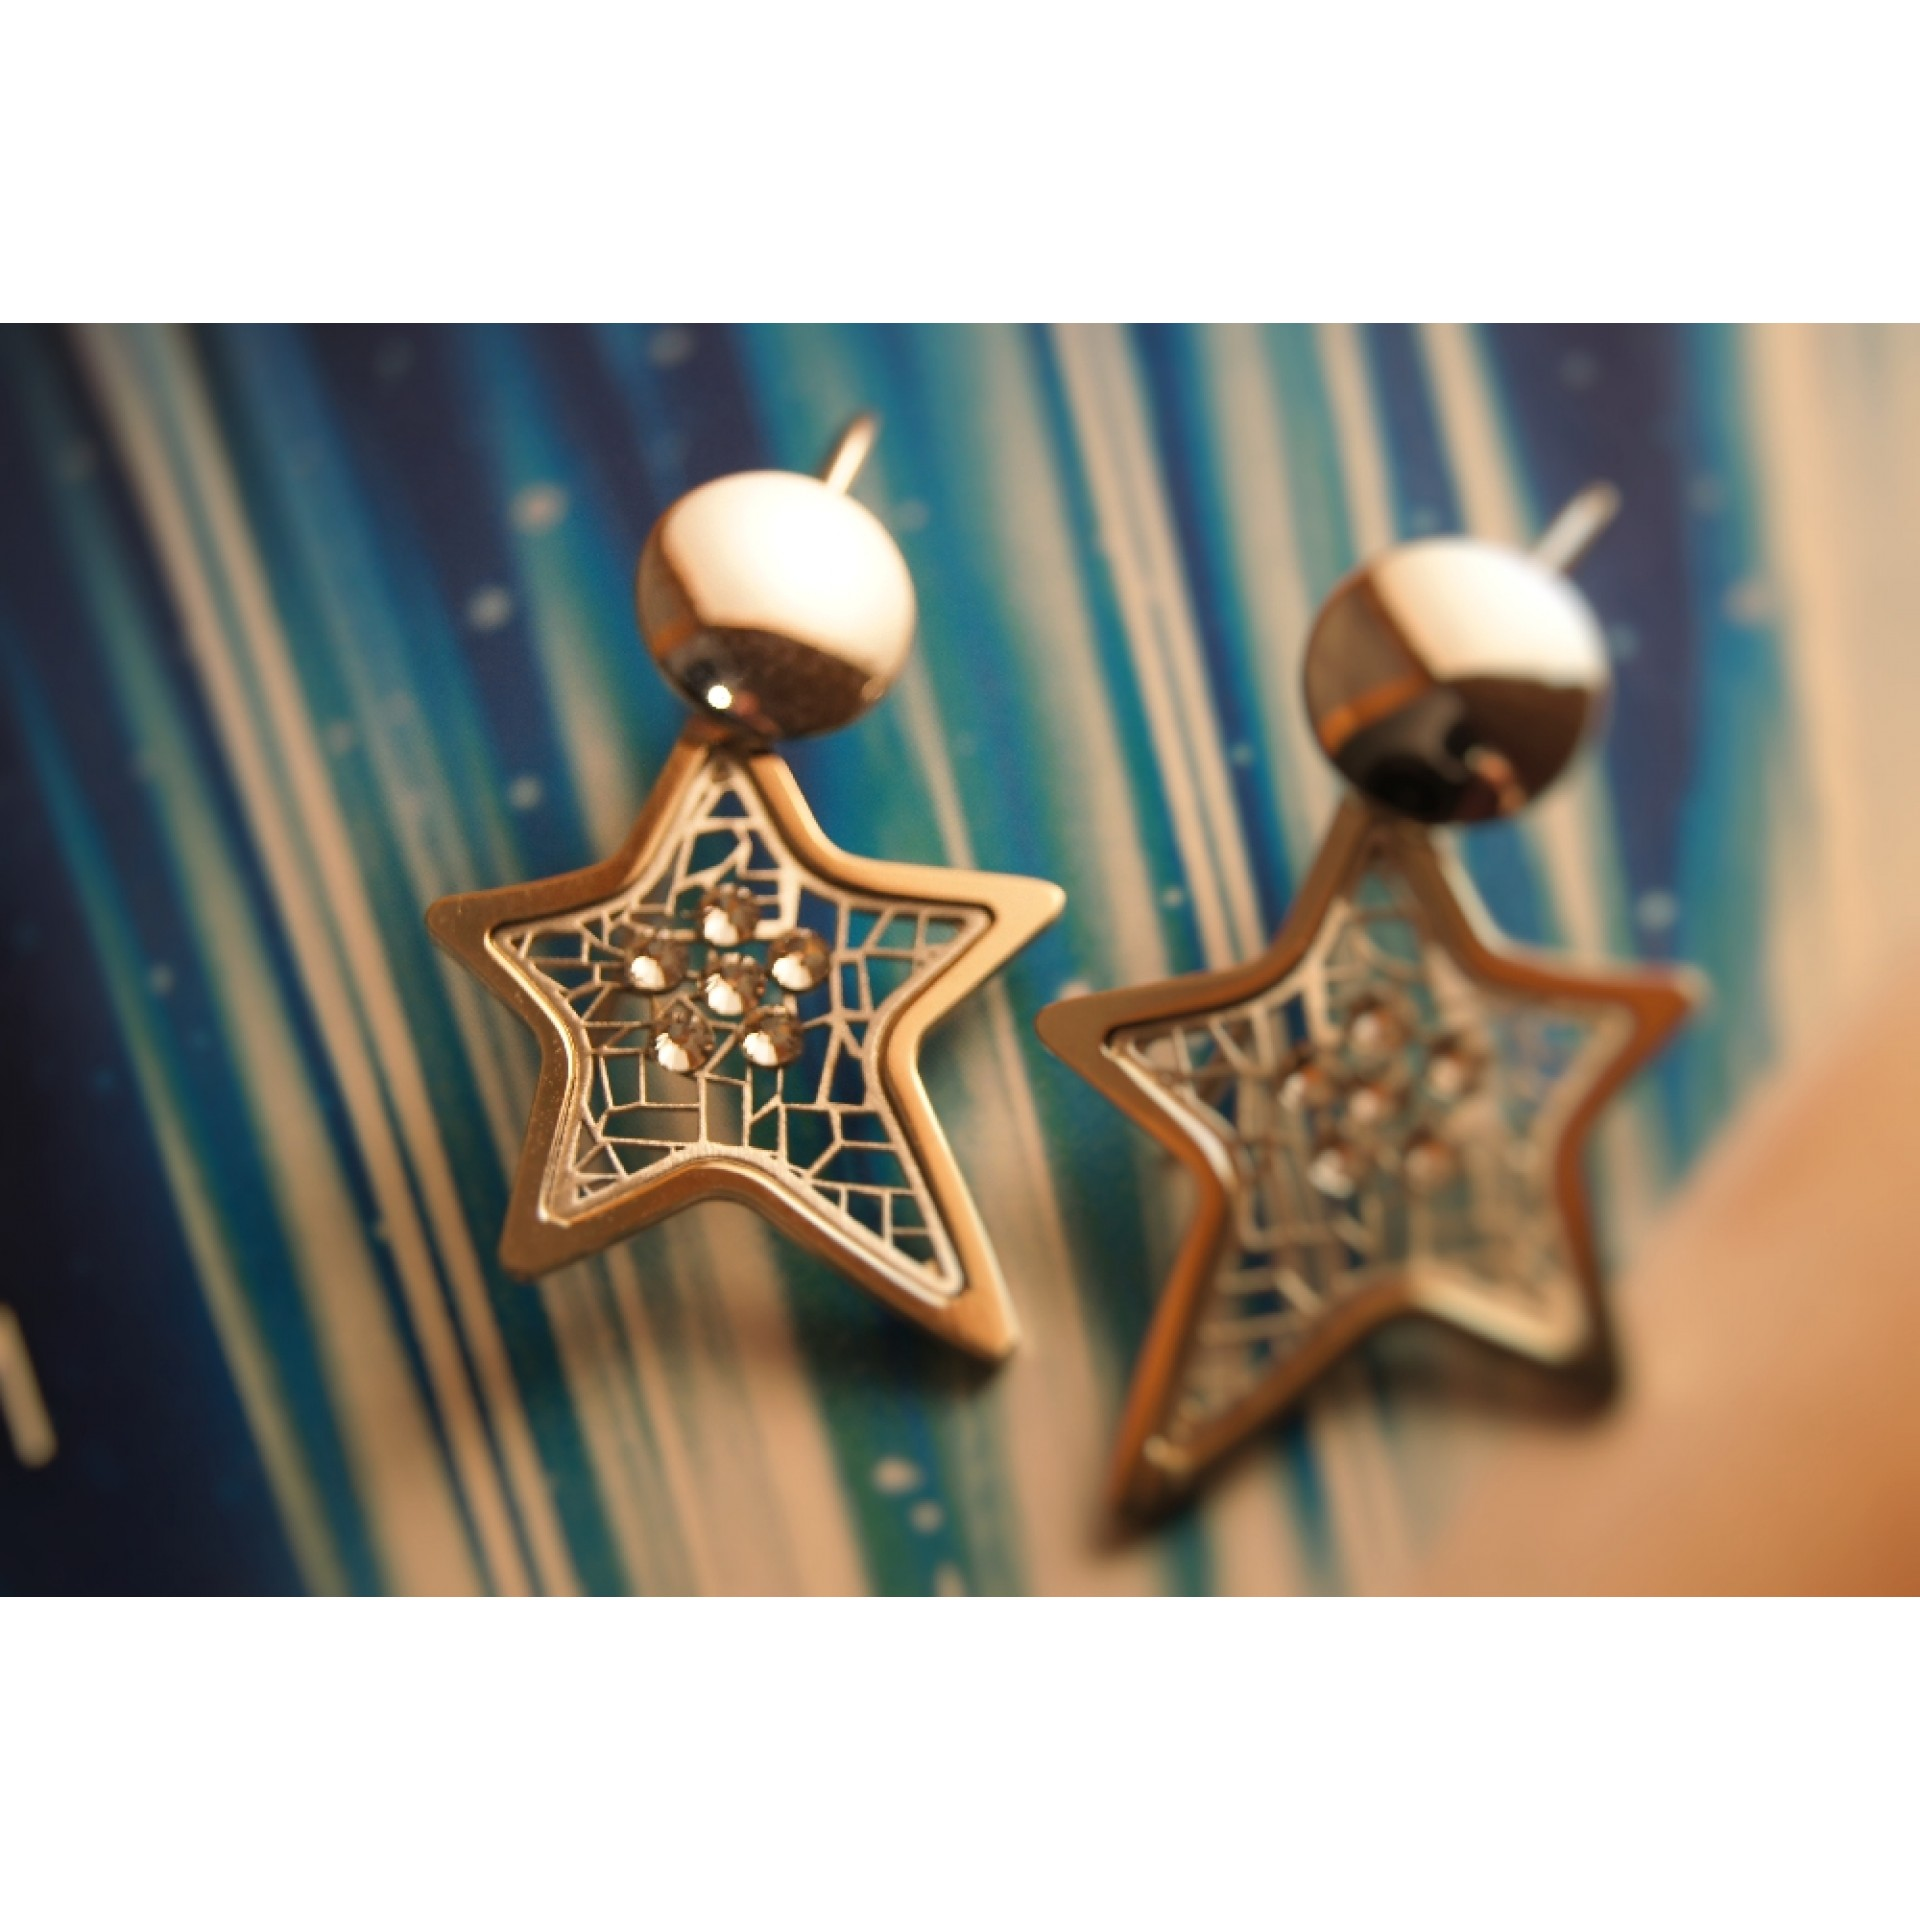 The Star-Addiction in Gold silver earrings